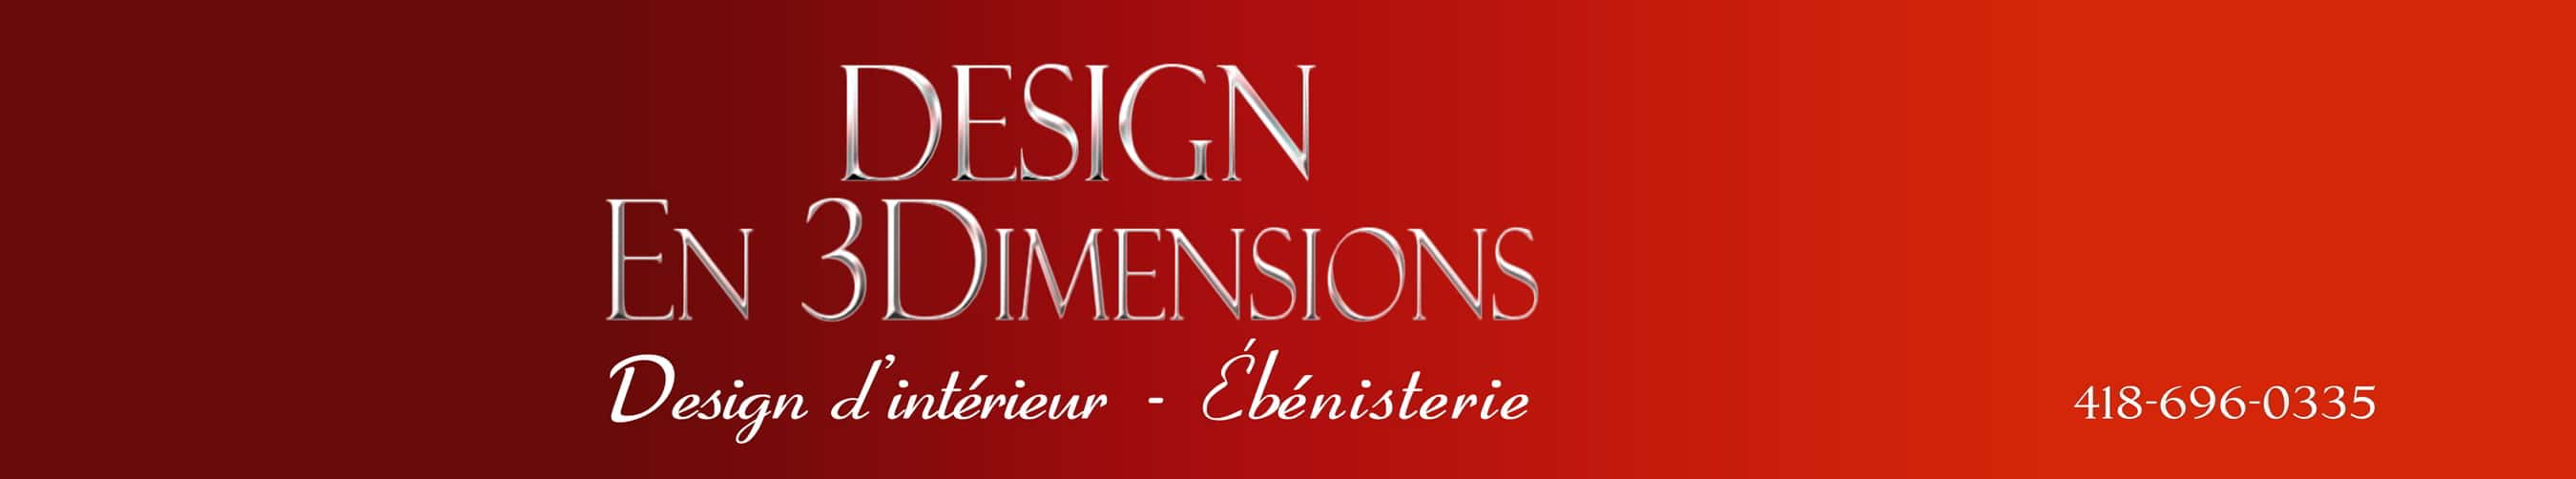 Design En 3 Dimensions Logo